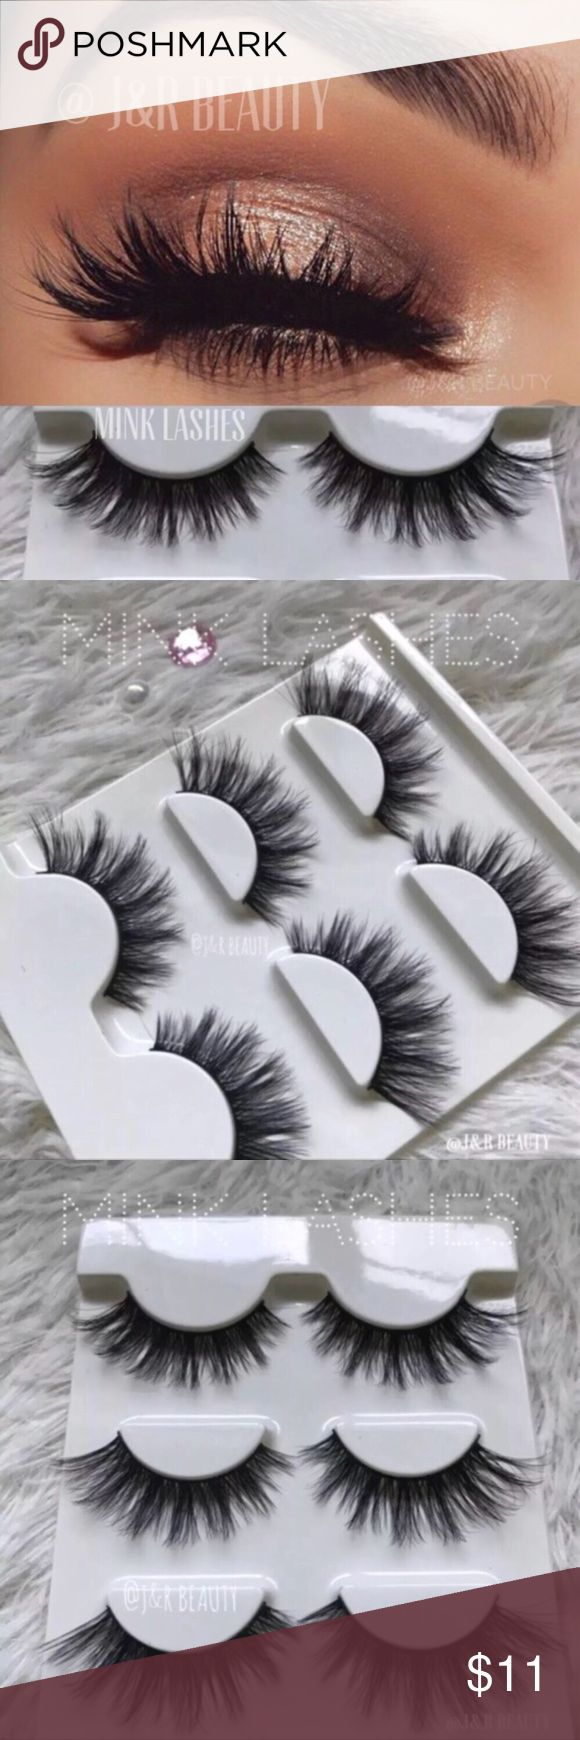 Mink lashes 3D 3 Pairs +$2 Add on eyelash Applicator  +$3 Add on eyelash glue Please message me if you want to add them.   ❌No Offers ✅ Bundle &  Save  # tags Iconic, mink, red cherry eyelashes, house of lashes, doll, kawaii, case, full, natural,  Koko, Ardell, wispies, Demi , makeup, Iconic, mink, red cherry eyelashes, house of lashes, doll, kawaii, case, full, natural,  Koko, Ardell, wispies, Demi , makeup, mascara, eyelash applicator, Mykonos Mink , Lashes , wispy ,eyelash case, mink…